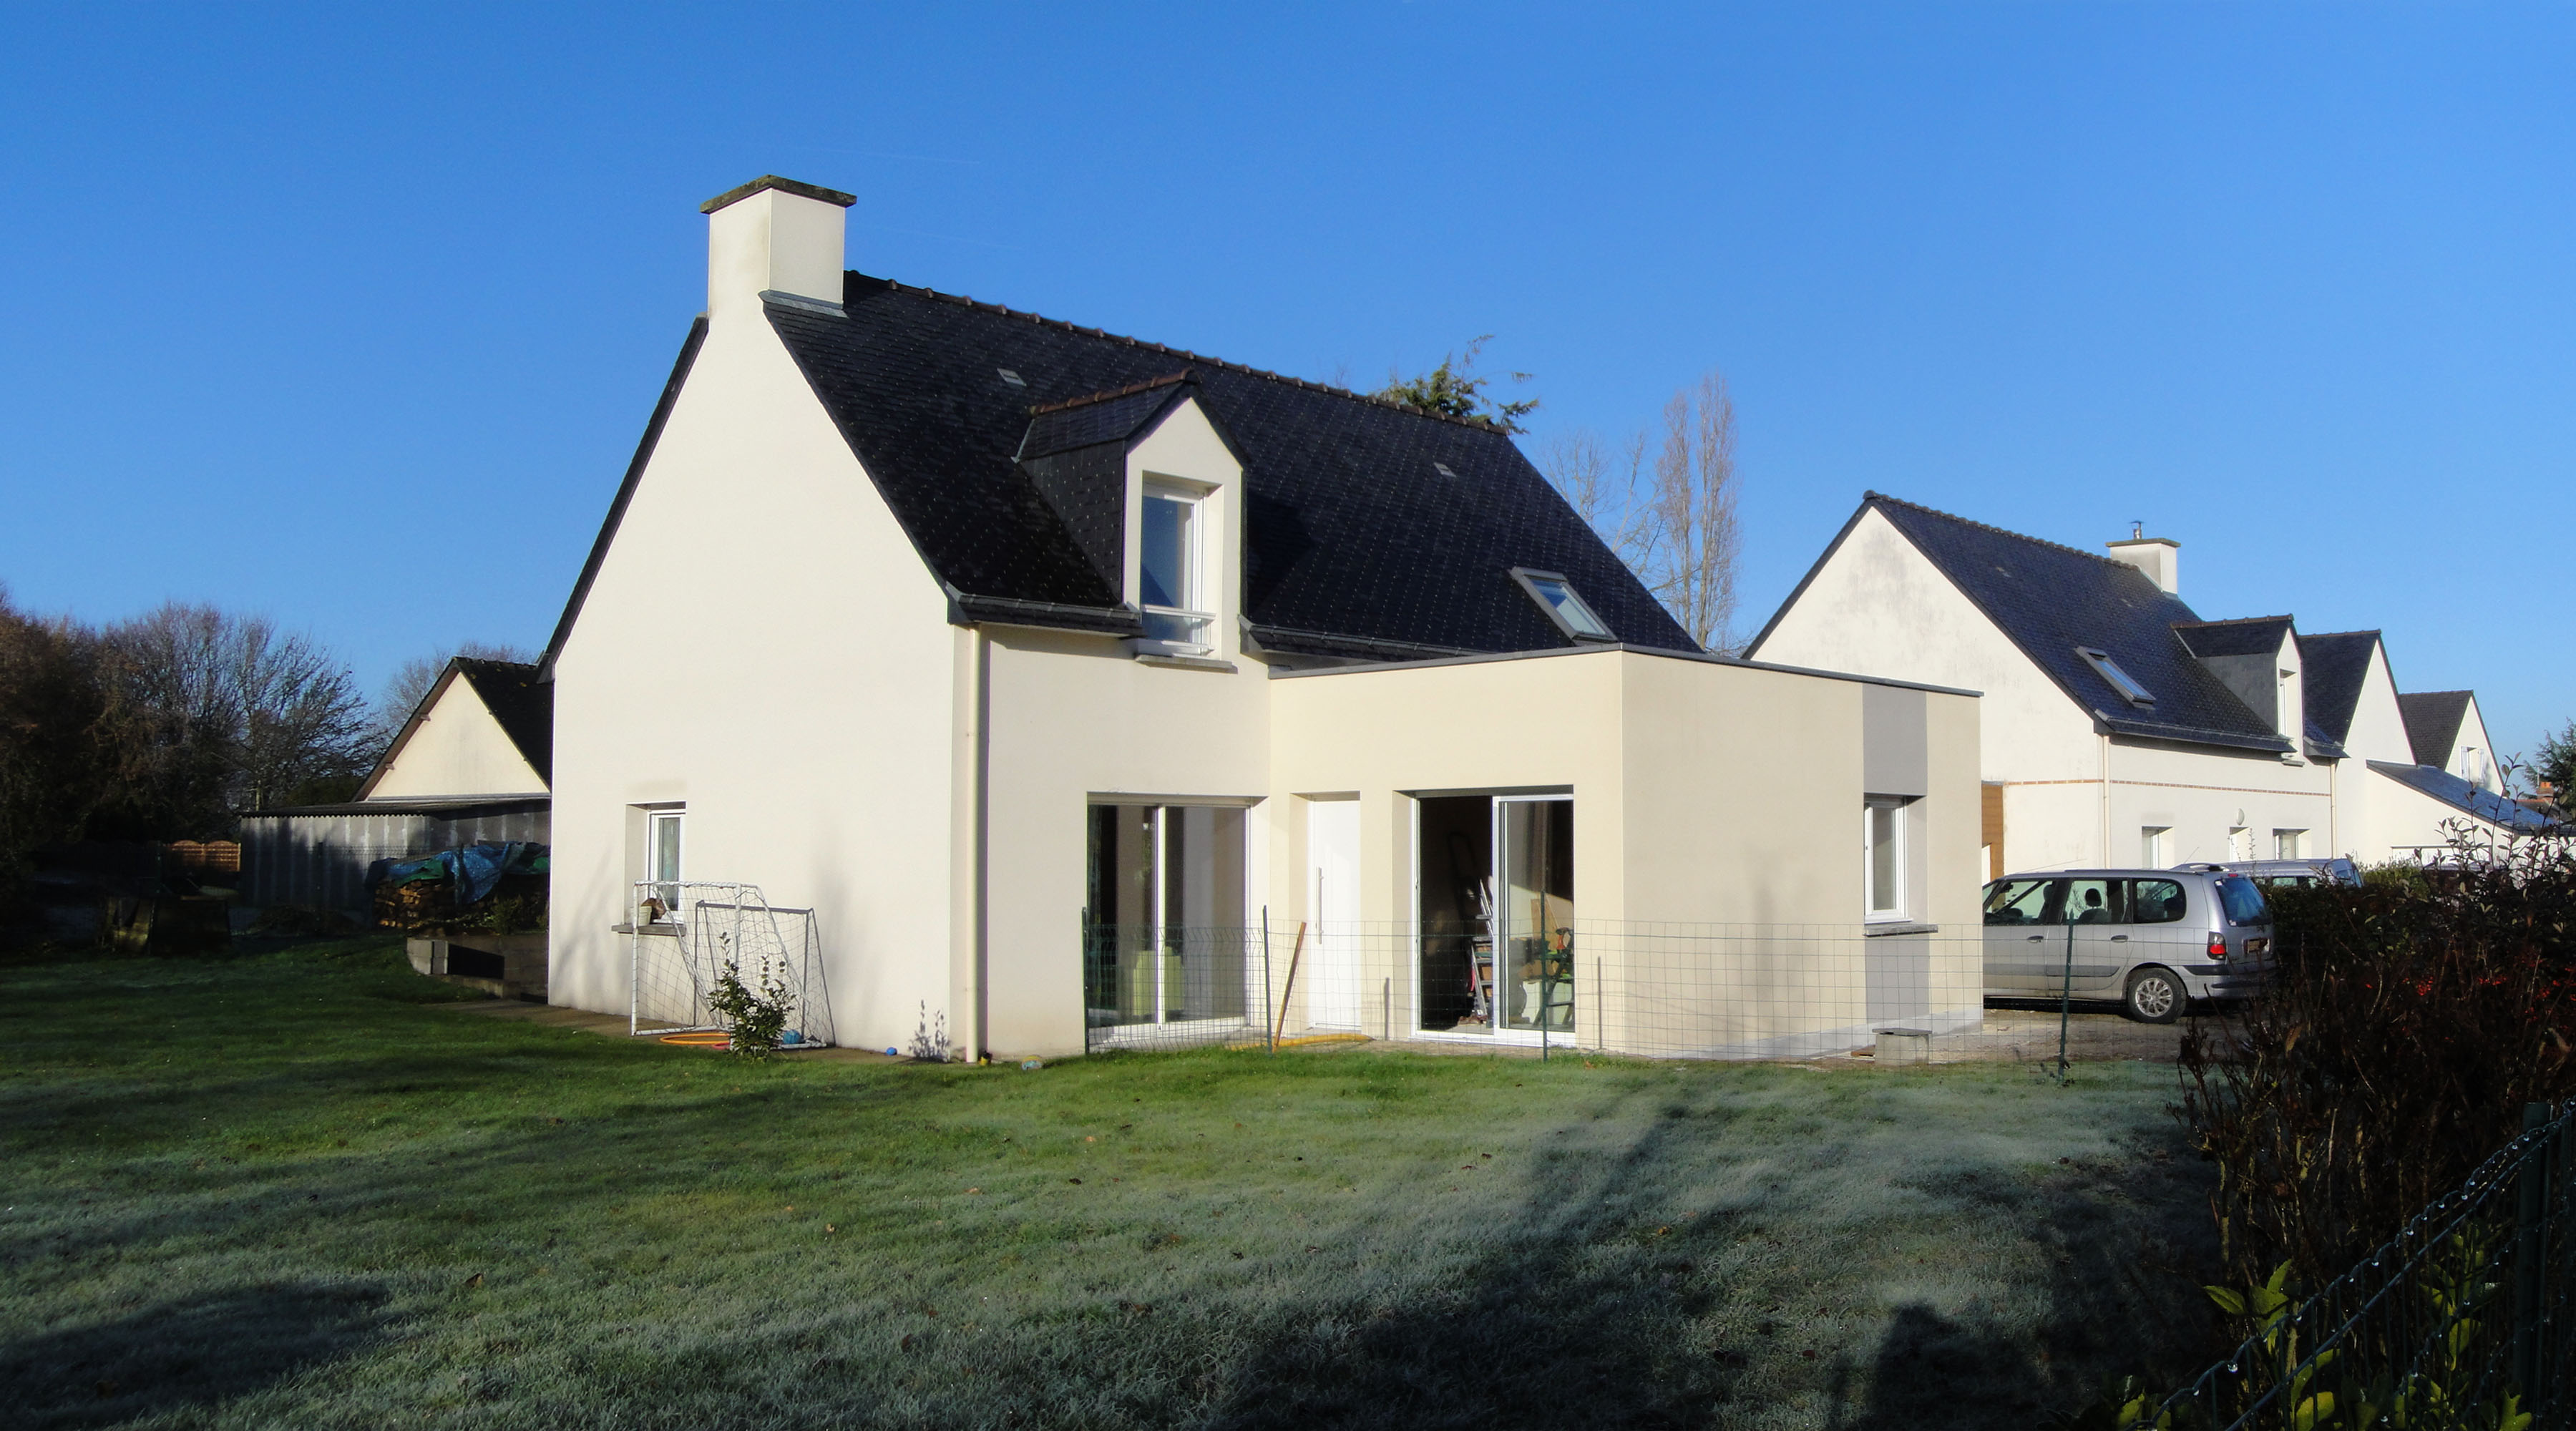 Projet c c 1 2 vue architecte lise roturier rennes for Extension maison 30000 euros